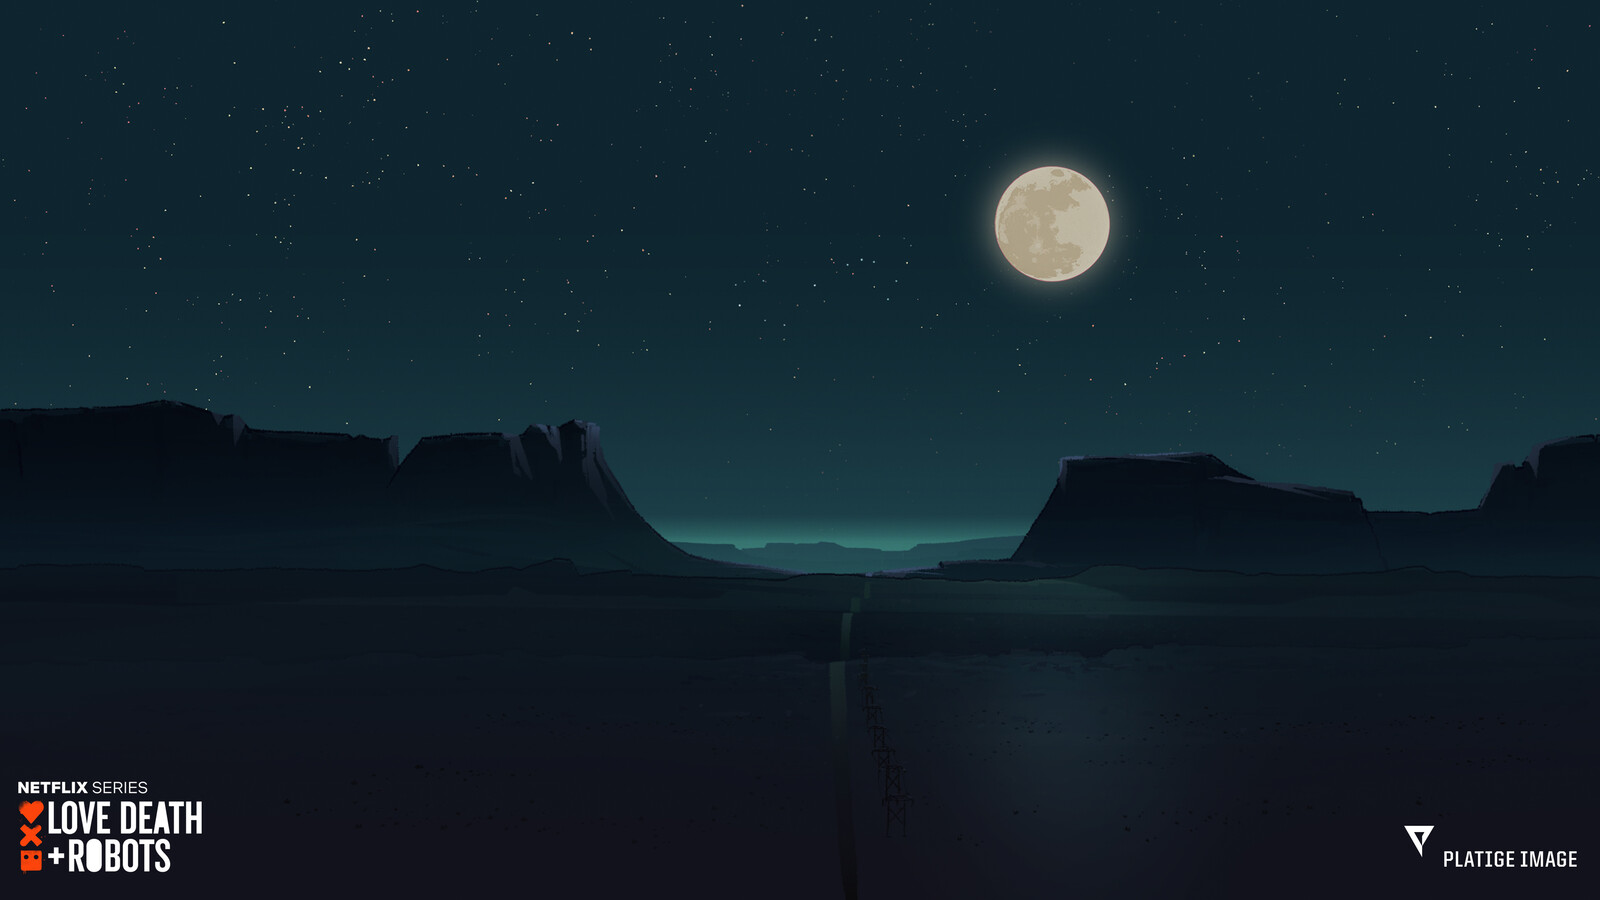 Final shot background painting